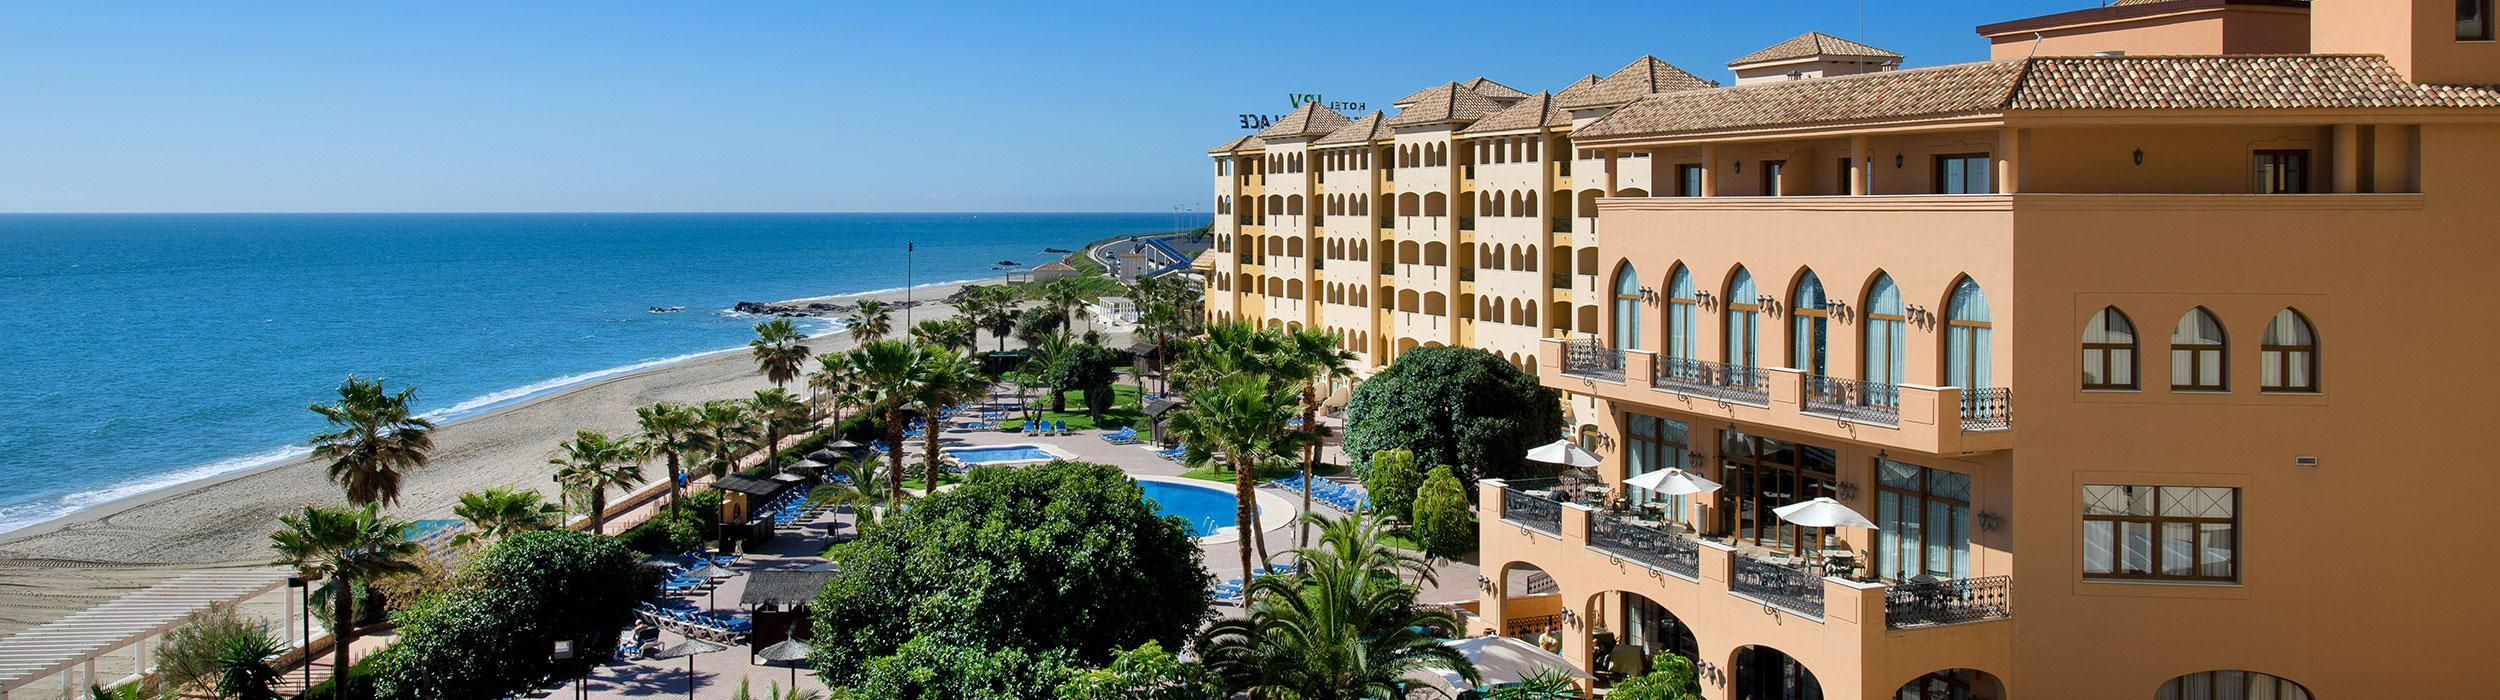 COSTA DEL SOL 15% OFF IPV PALACE & SPA: BOOK BEFORE 30TH APRIL